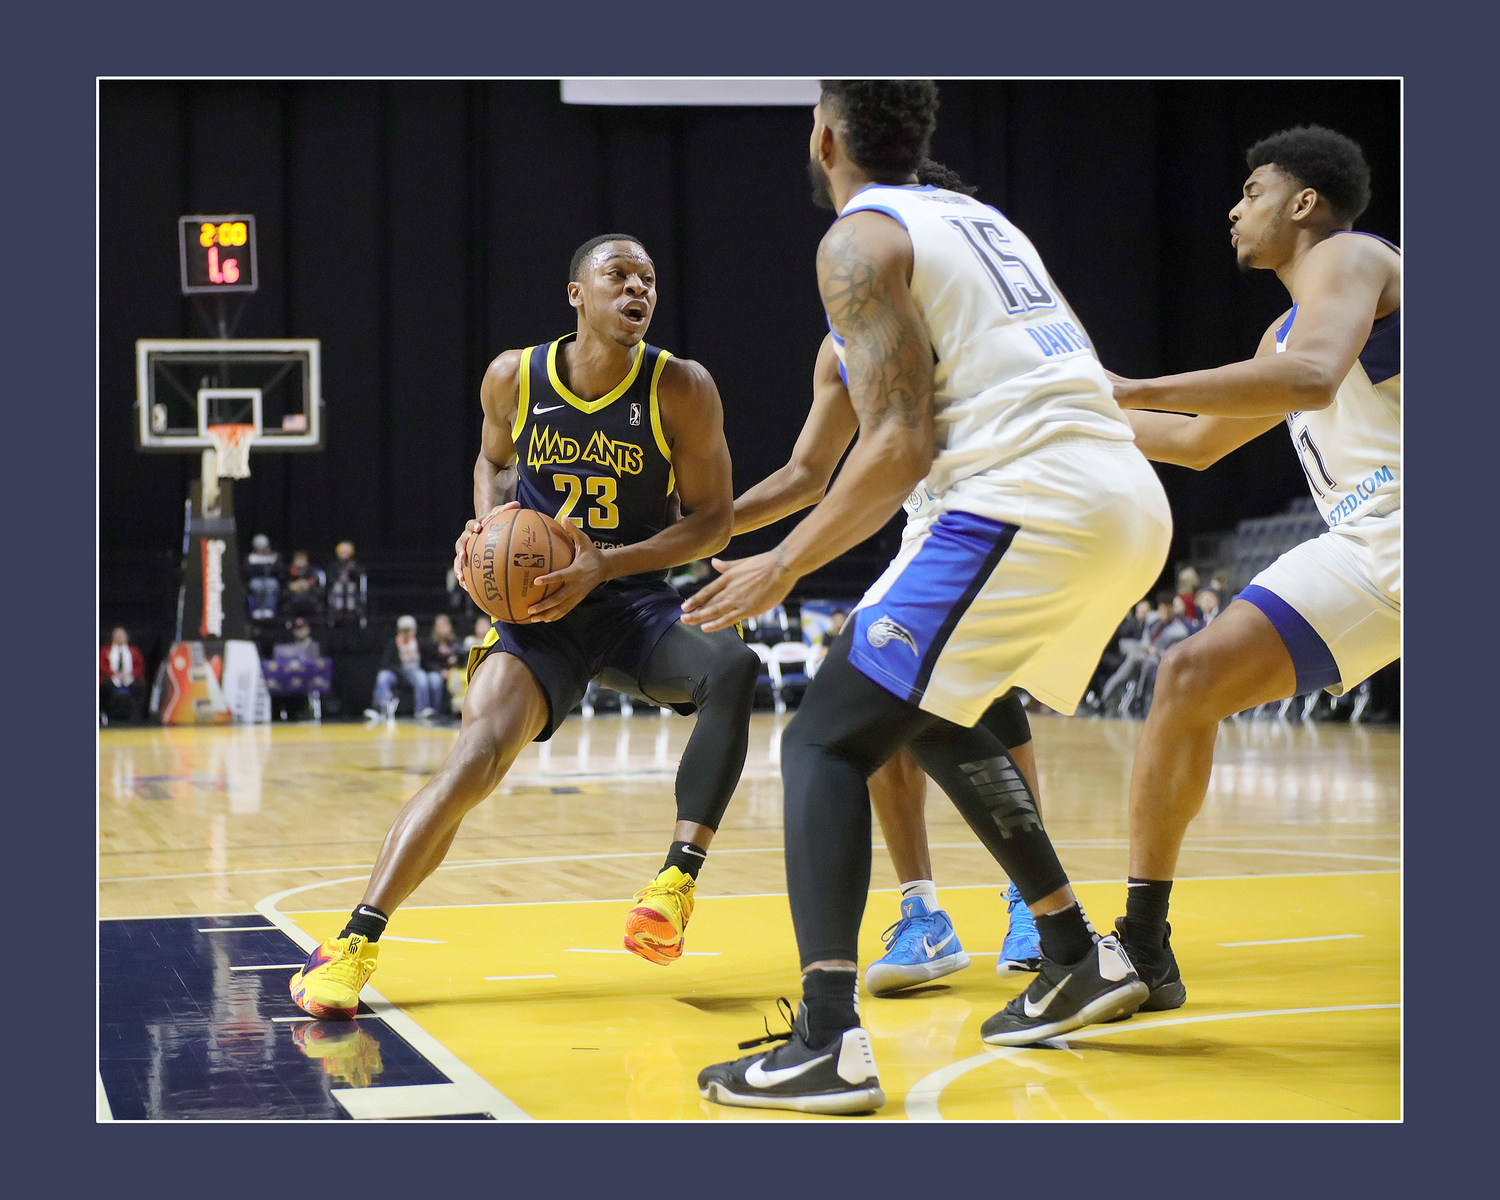 IMAGE: https://photos.smugmug.com/Sports-Events/Mad-Ants-Current-Season/Jan-19-2019/i-9pXGJK2/0/b7e450dc/X3/IMG_3709a-X3.jpg